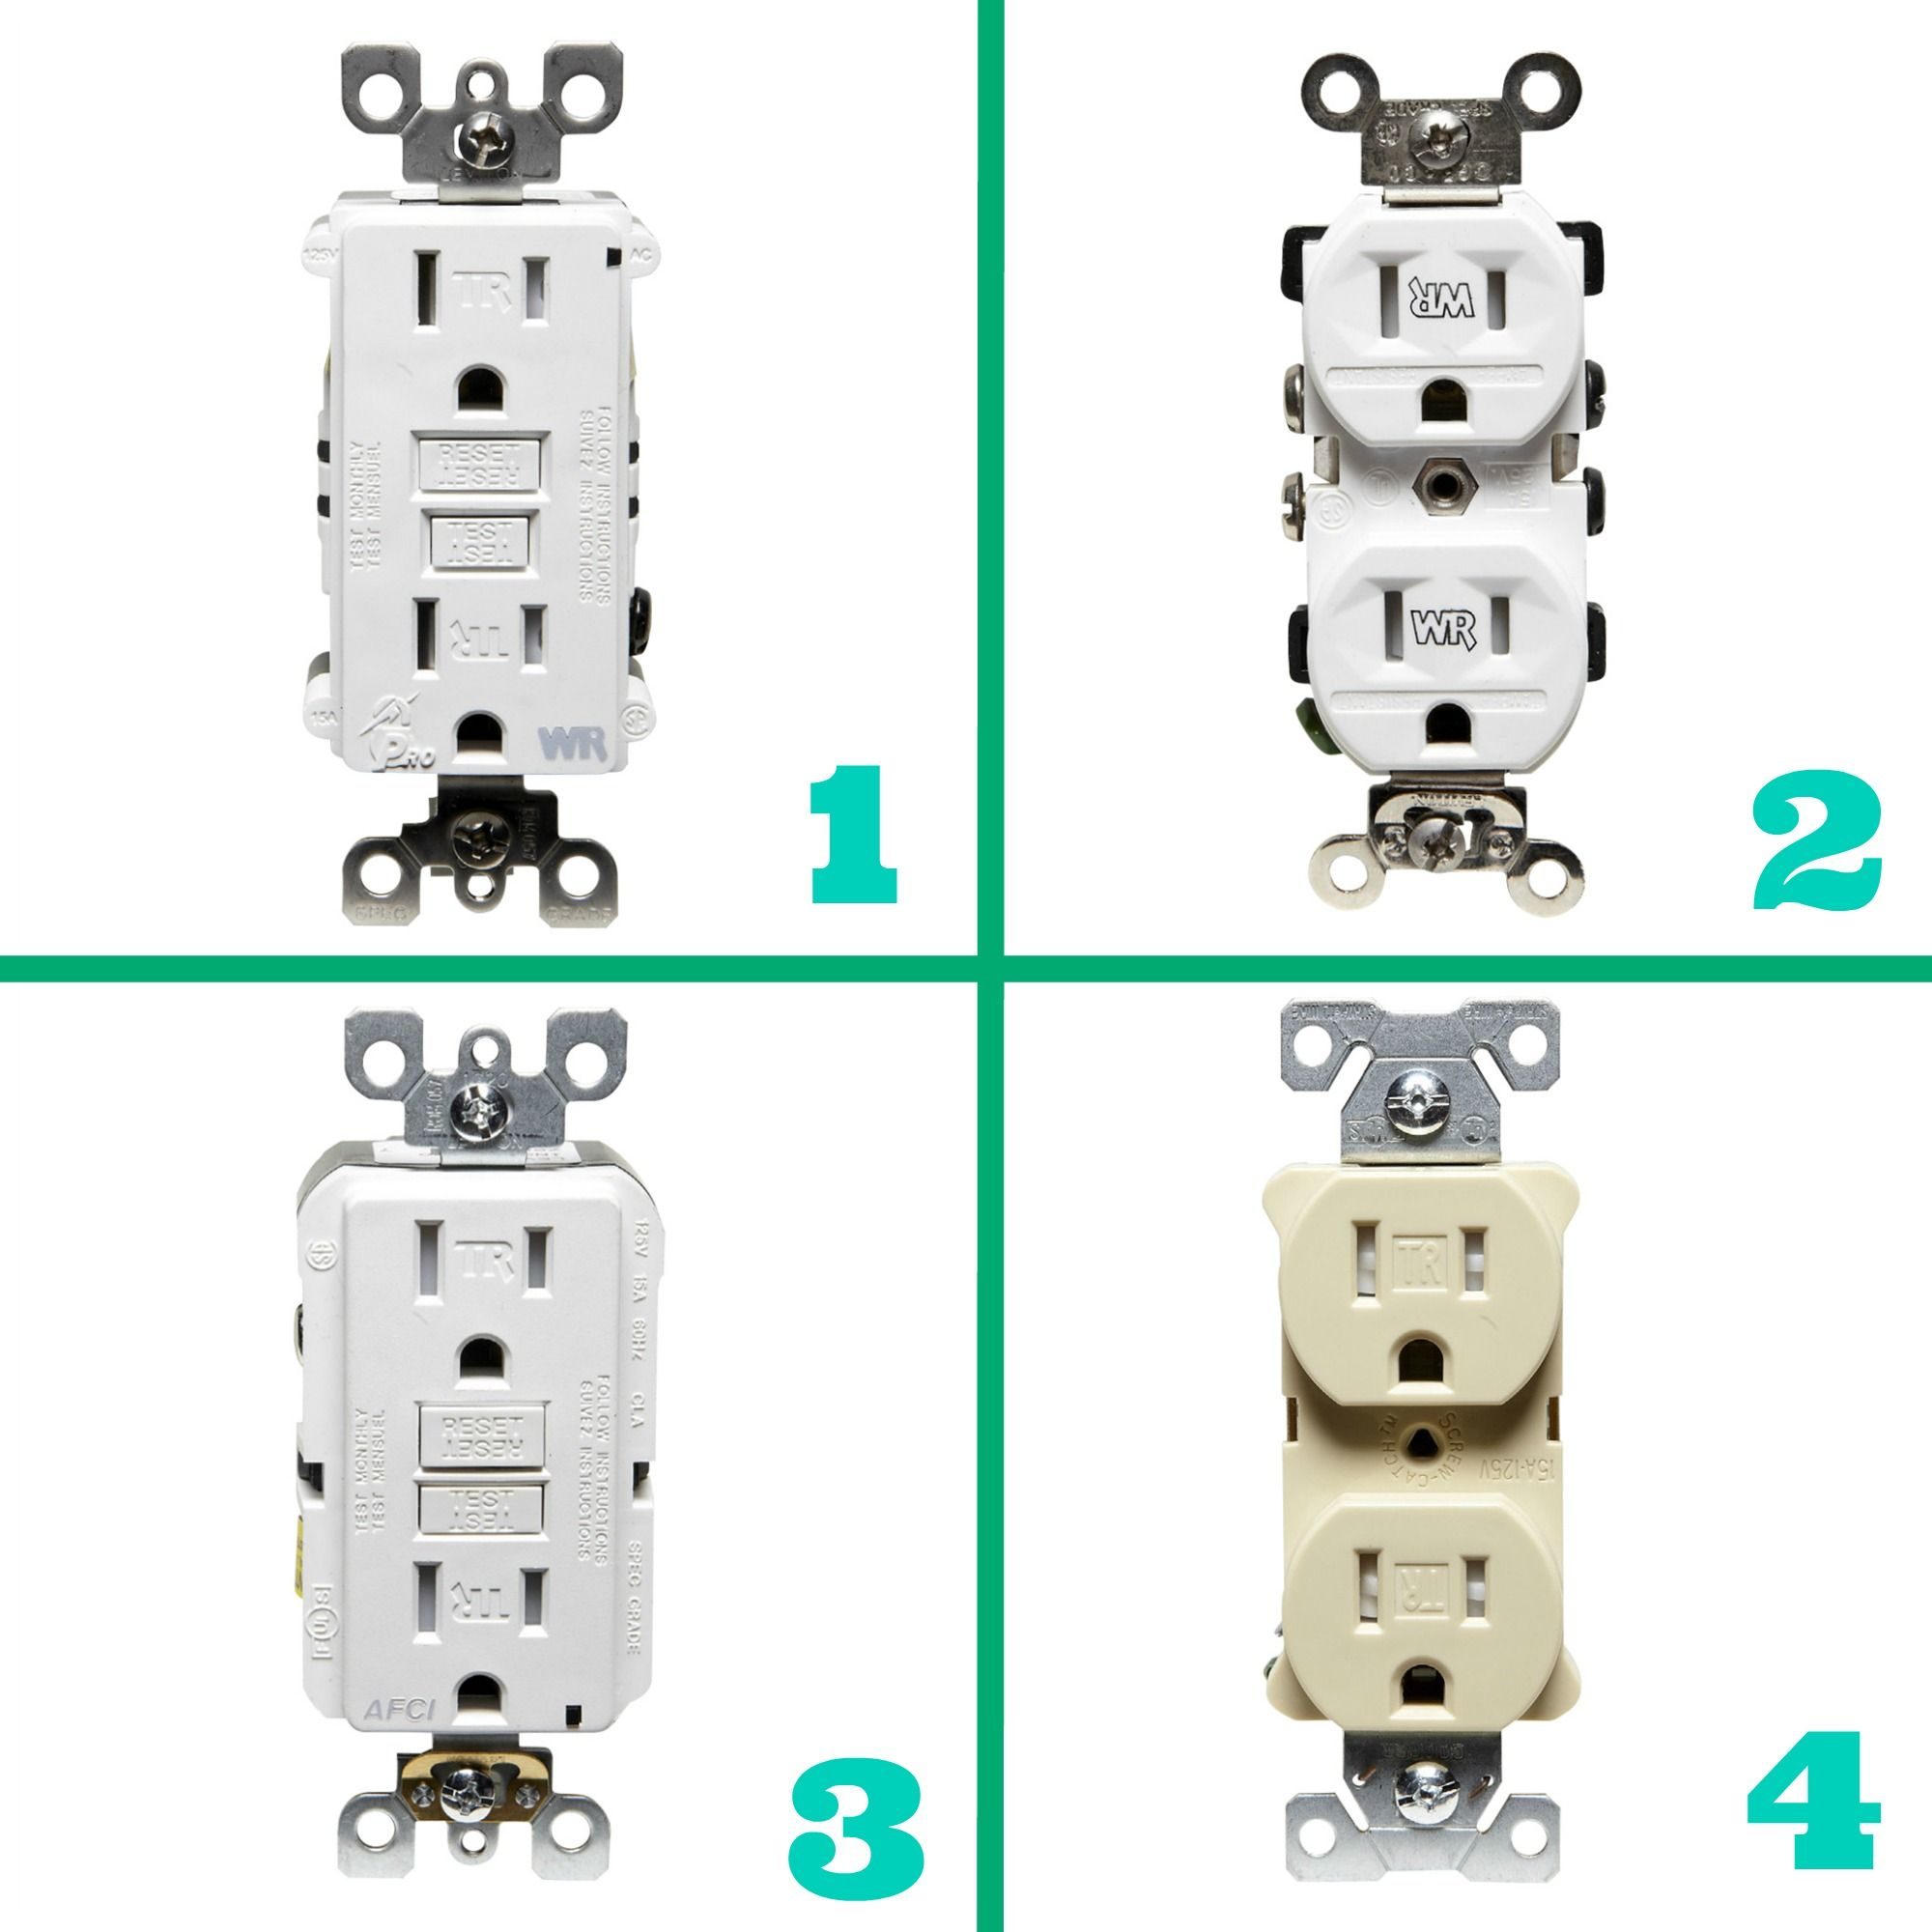 Wiring Switches And Learning Best Electrical Circuit Diagram How To Wire Outlet Switch Light Electricity Pinterest Outlets The Safe Easy Way Rh Com A Single Pole